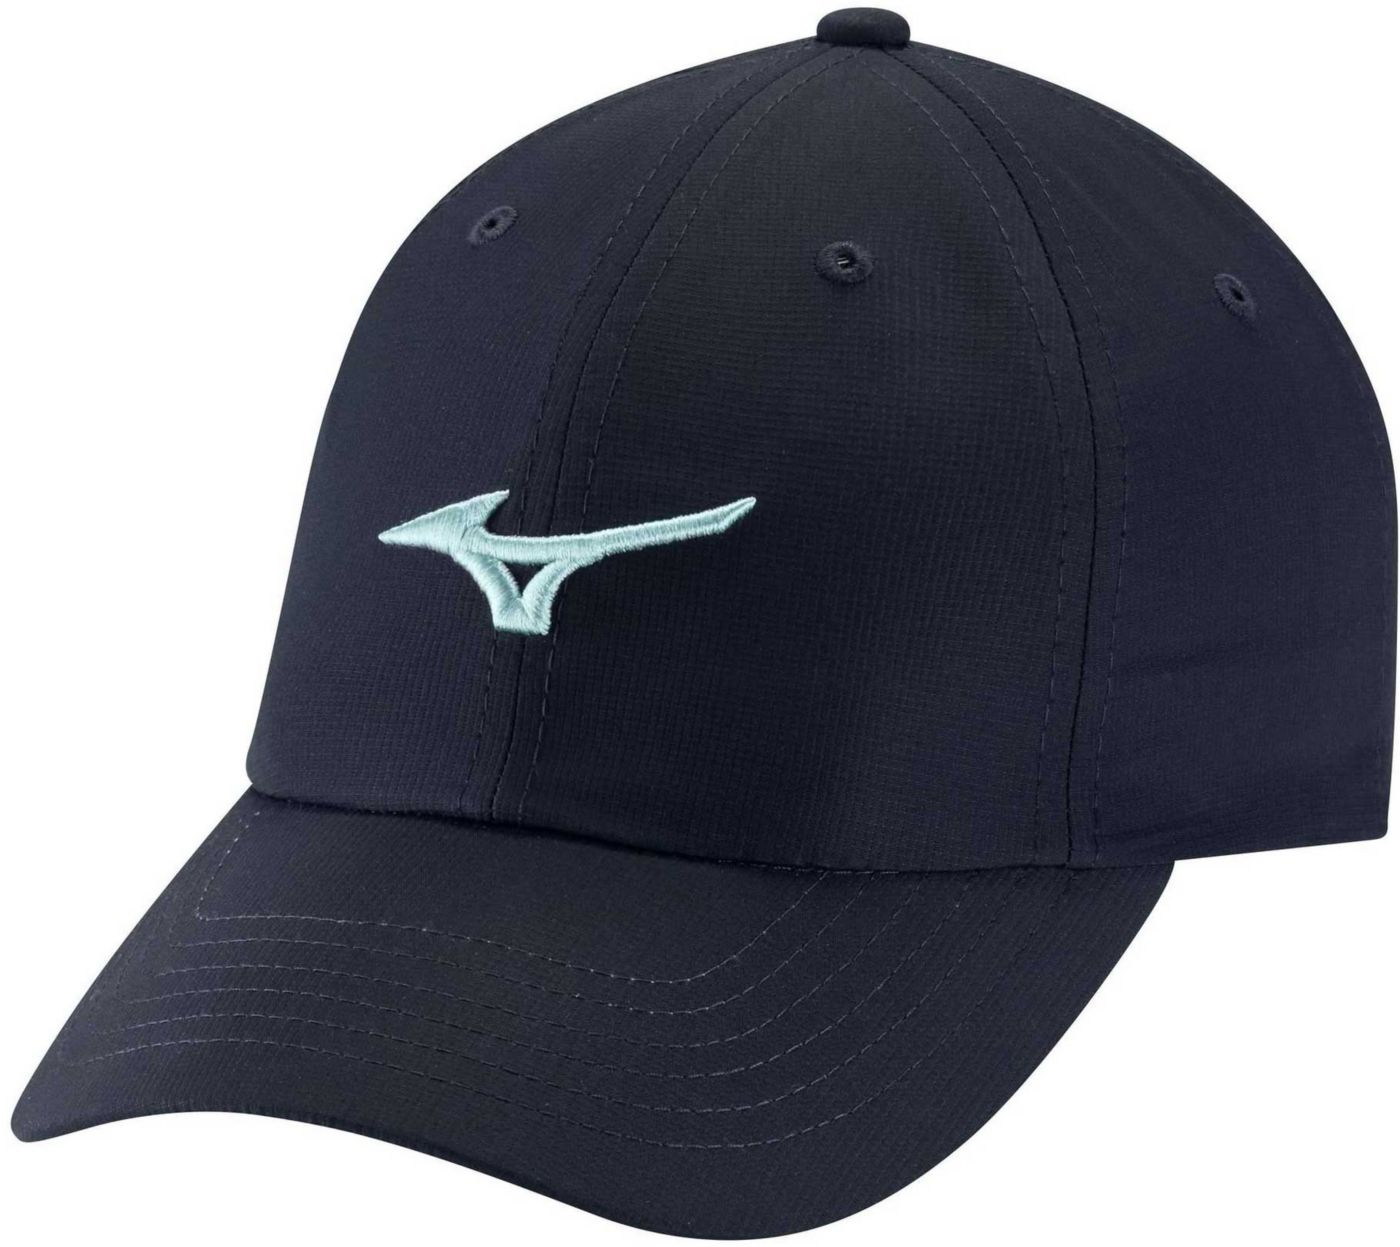 Mizuno Men's Tour Lightweight Golf Hat - Small Fit